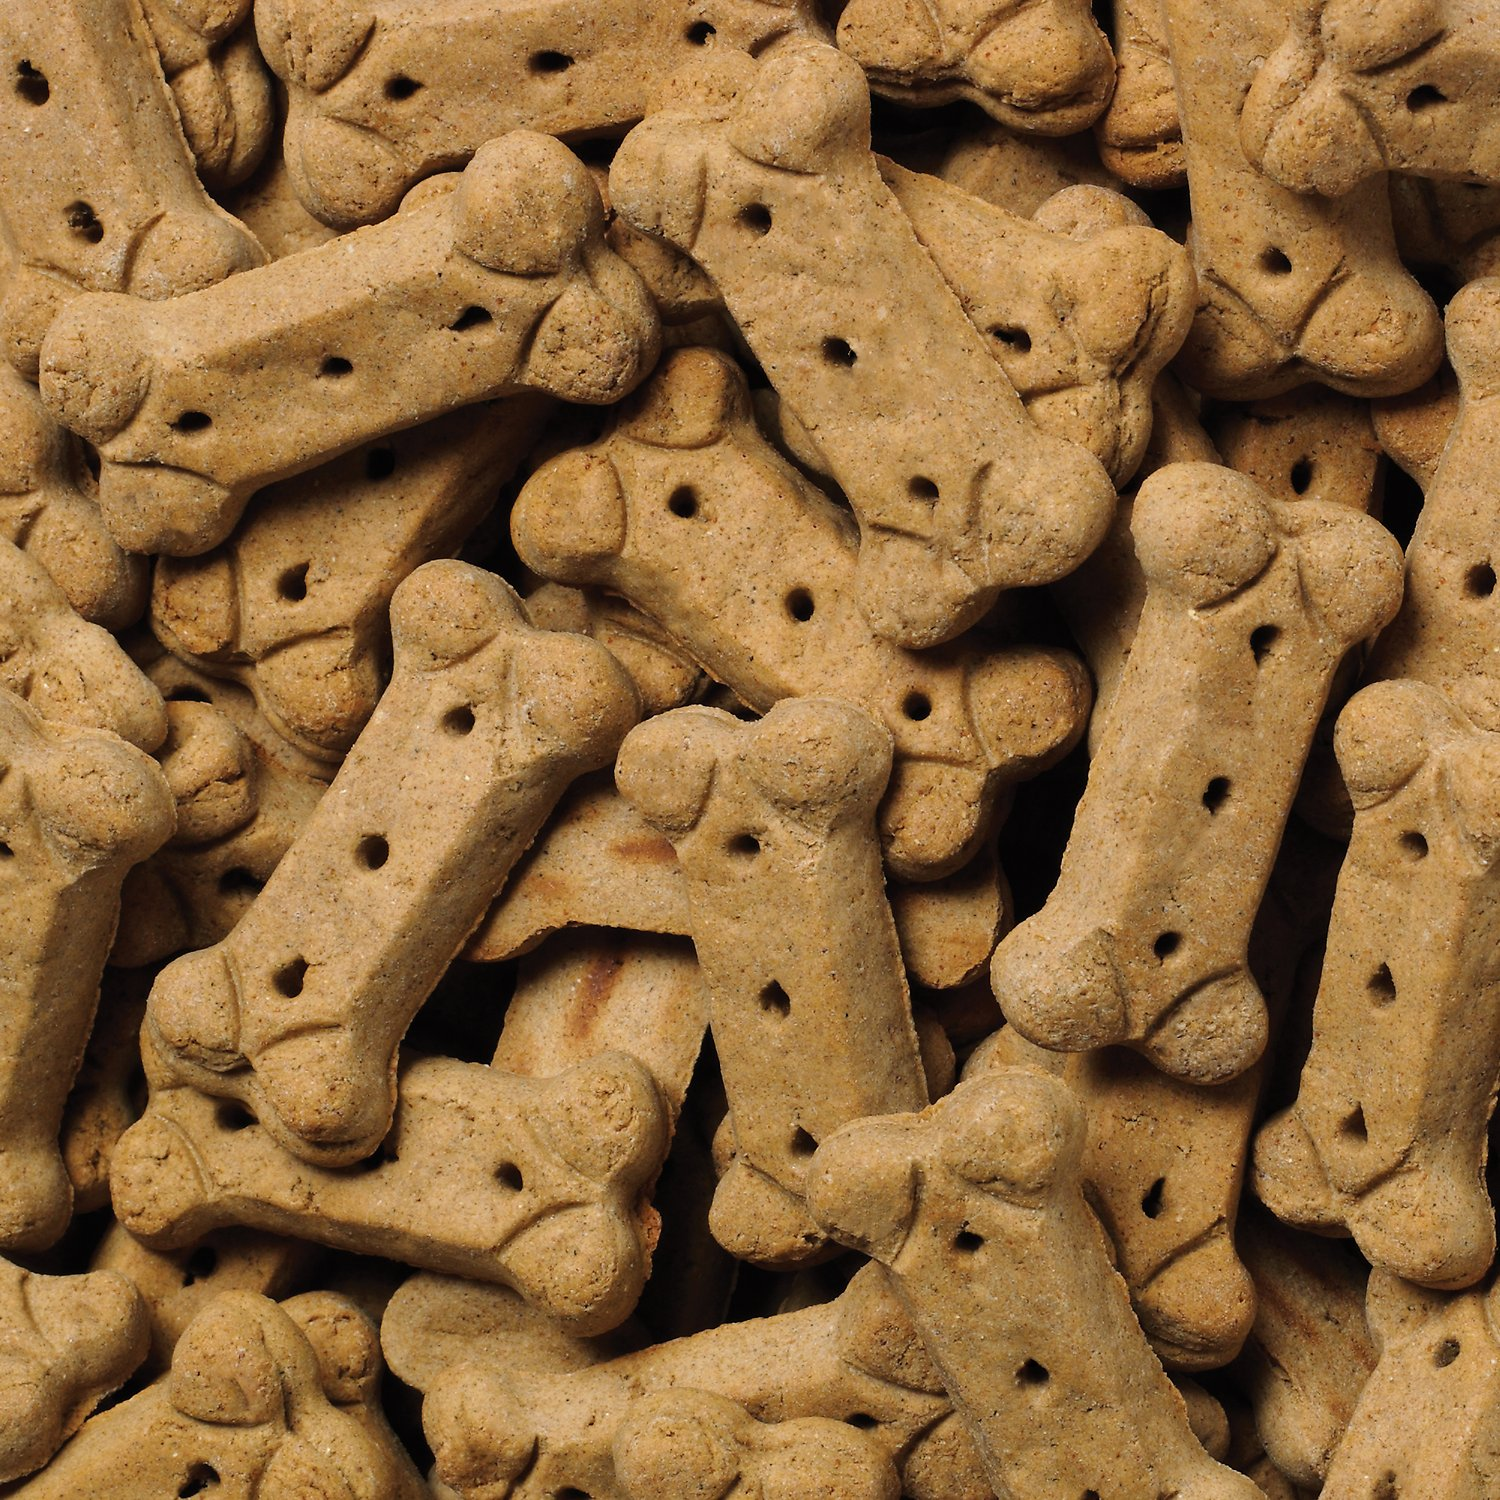 SPORTMiX Wholesomes Grain-Free Small Golden Biscuit Dog Treats, 5-lb